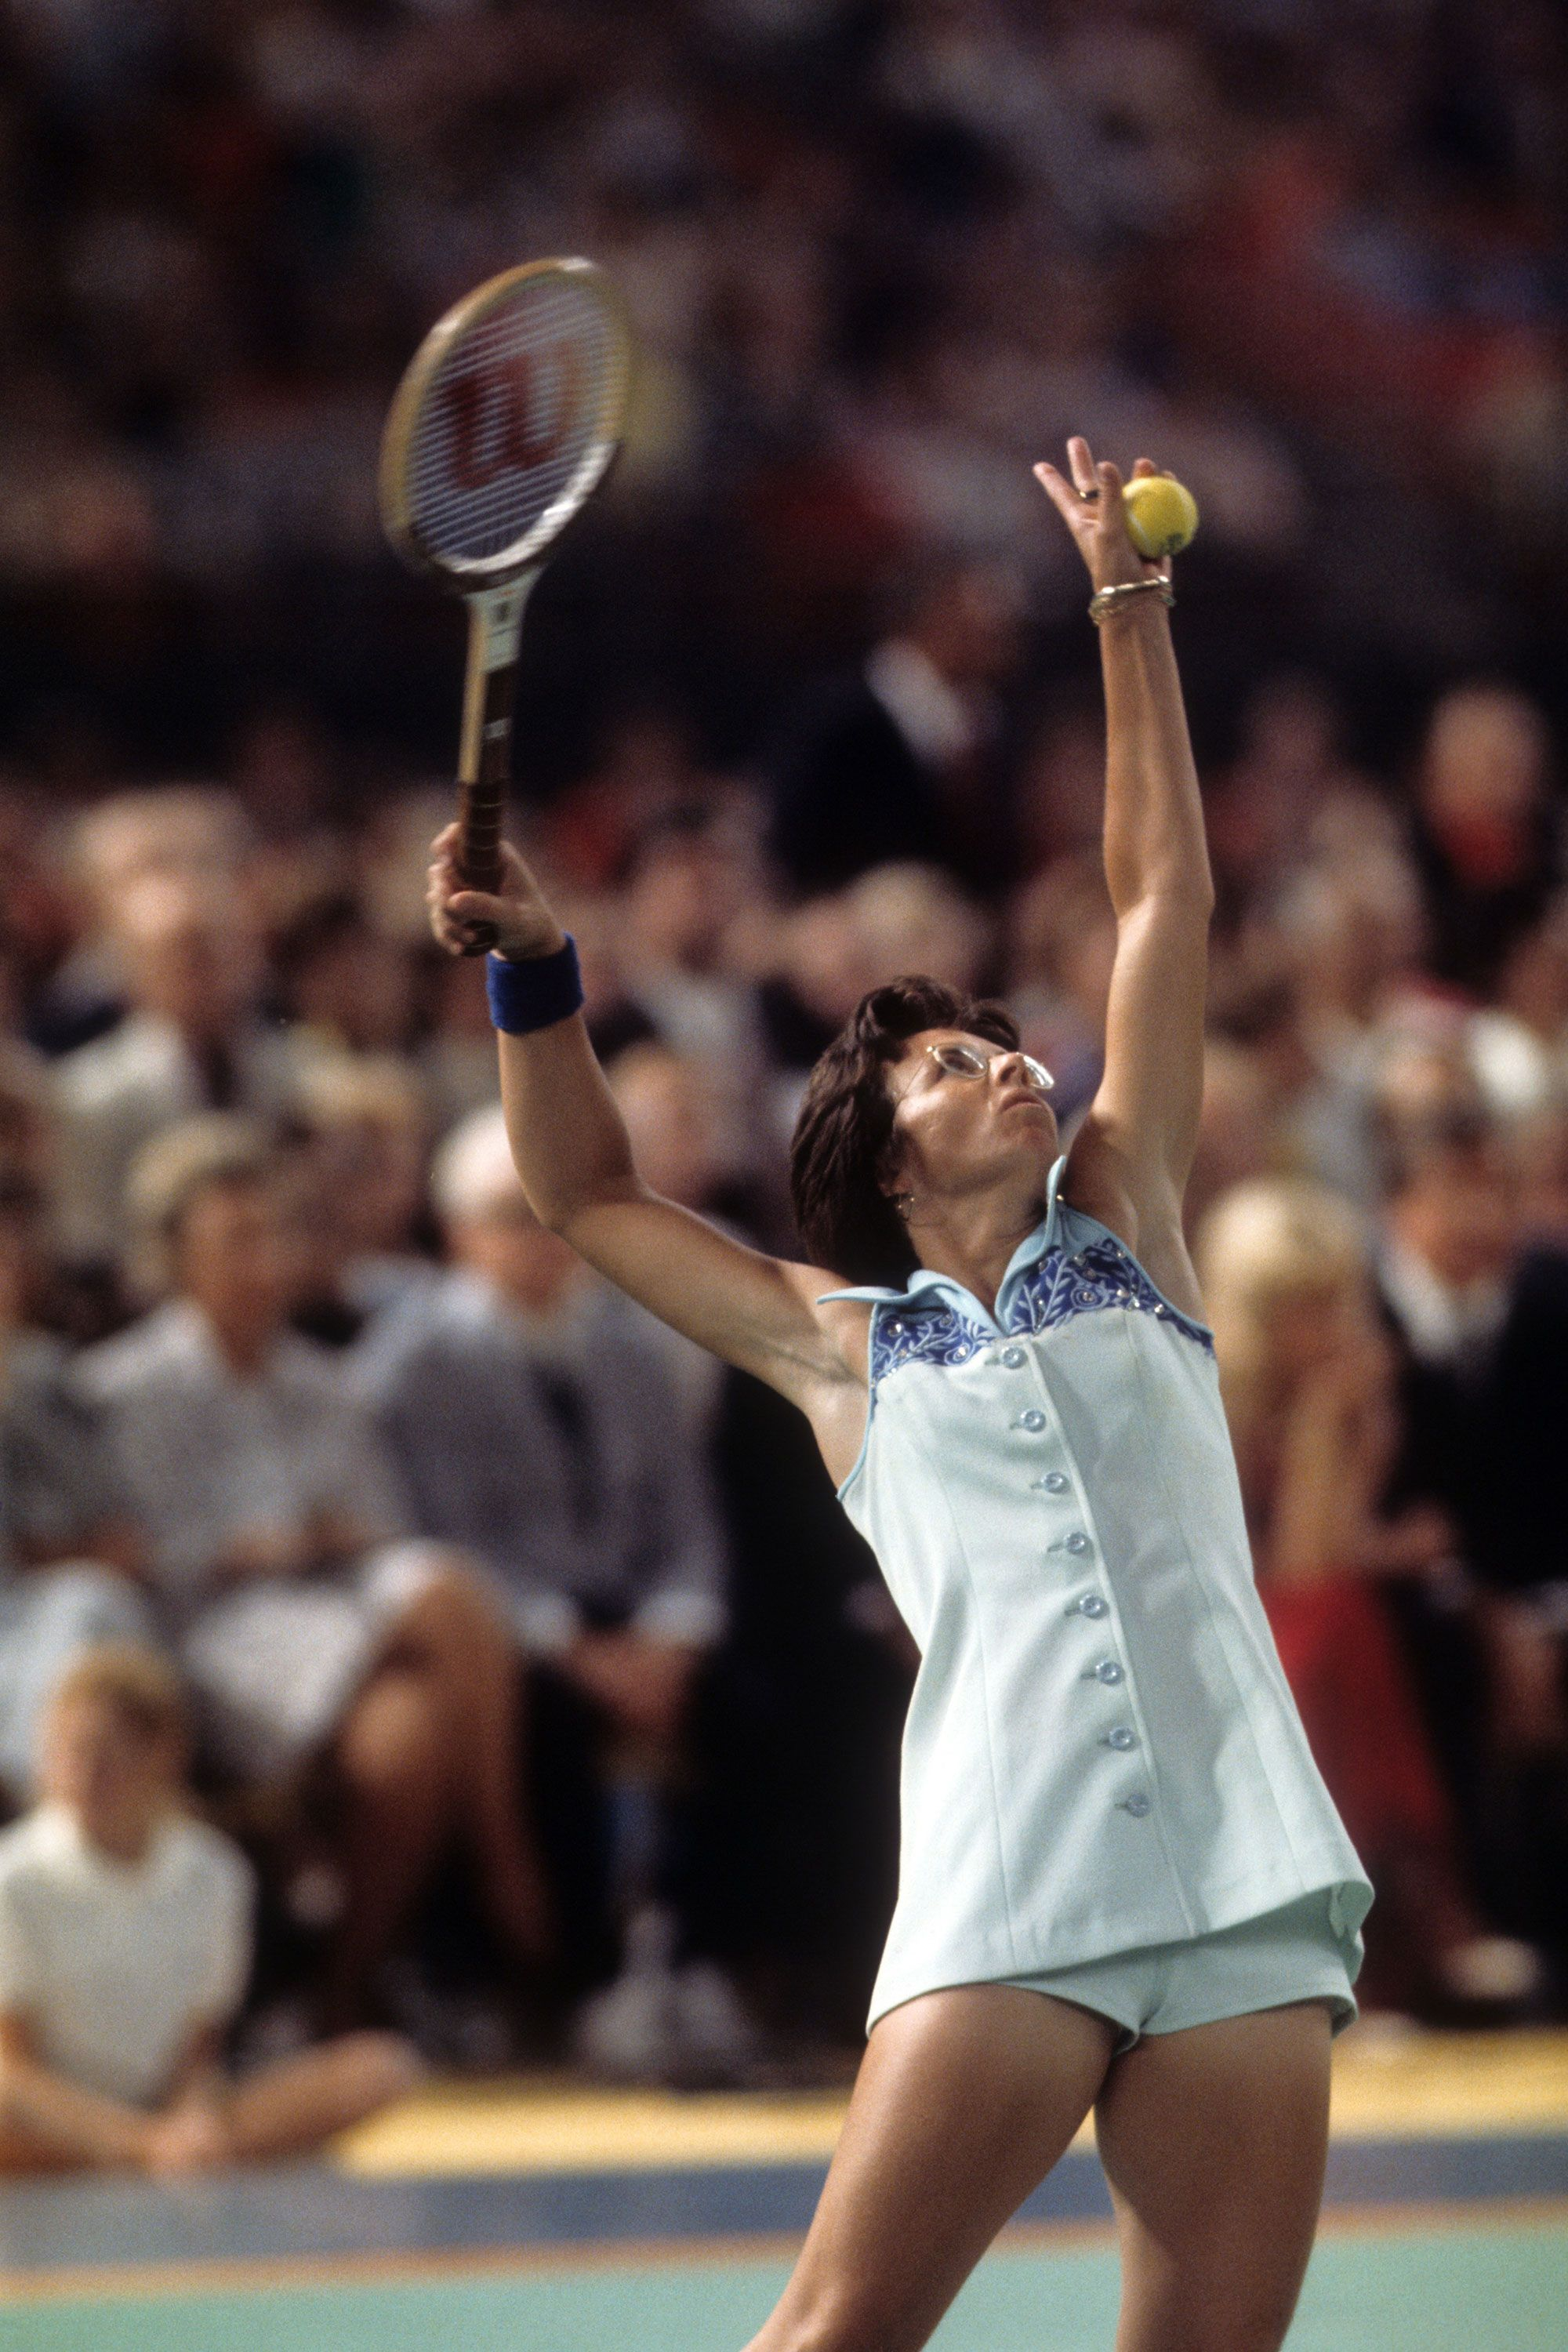 "<p>In 1973, pros Billy Jean King and Bobby Riggs faced off&nbsp&#x3B;in a tennis game that became known&nbsp&#x3B;as ""The Battle of the Sexes."" Fifty&nbsp&#x3B;million people in the U.S. and 90 million worldwide watched&nbsp&#x3B;29-year-old King play&nbsp&#x3B;against 55-year-old Riggs at the&nbsp&#x3B;Houston Astrodome<span class=""redactor-invisible-space"" data-verified=""redactor"" data-redactor-tag=""span"" data-redactor-class=""redactor-invisible-space"">. At stake? A winner's prize of $100,000.&nbsp&#x3B;</span>King made a stunning comeback&nbsp&#x3B;after falling behind during the first set. She won all three sets, winning 6 to 3 in the third set. Female tennis plays are now more accepted, but similar ""Battles of the Sexes"" have taken place since King bested Riggs, including in 2013 when Chinese tennis pro&nbsp&#x3B;Li Na beat&nbsp&#x3B;Novak Djokovic 3-2.&nbsp&#x3B;</p>"